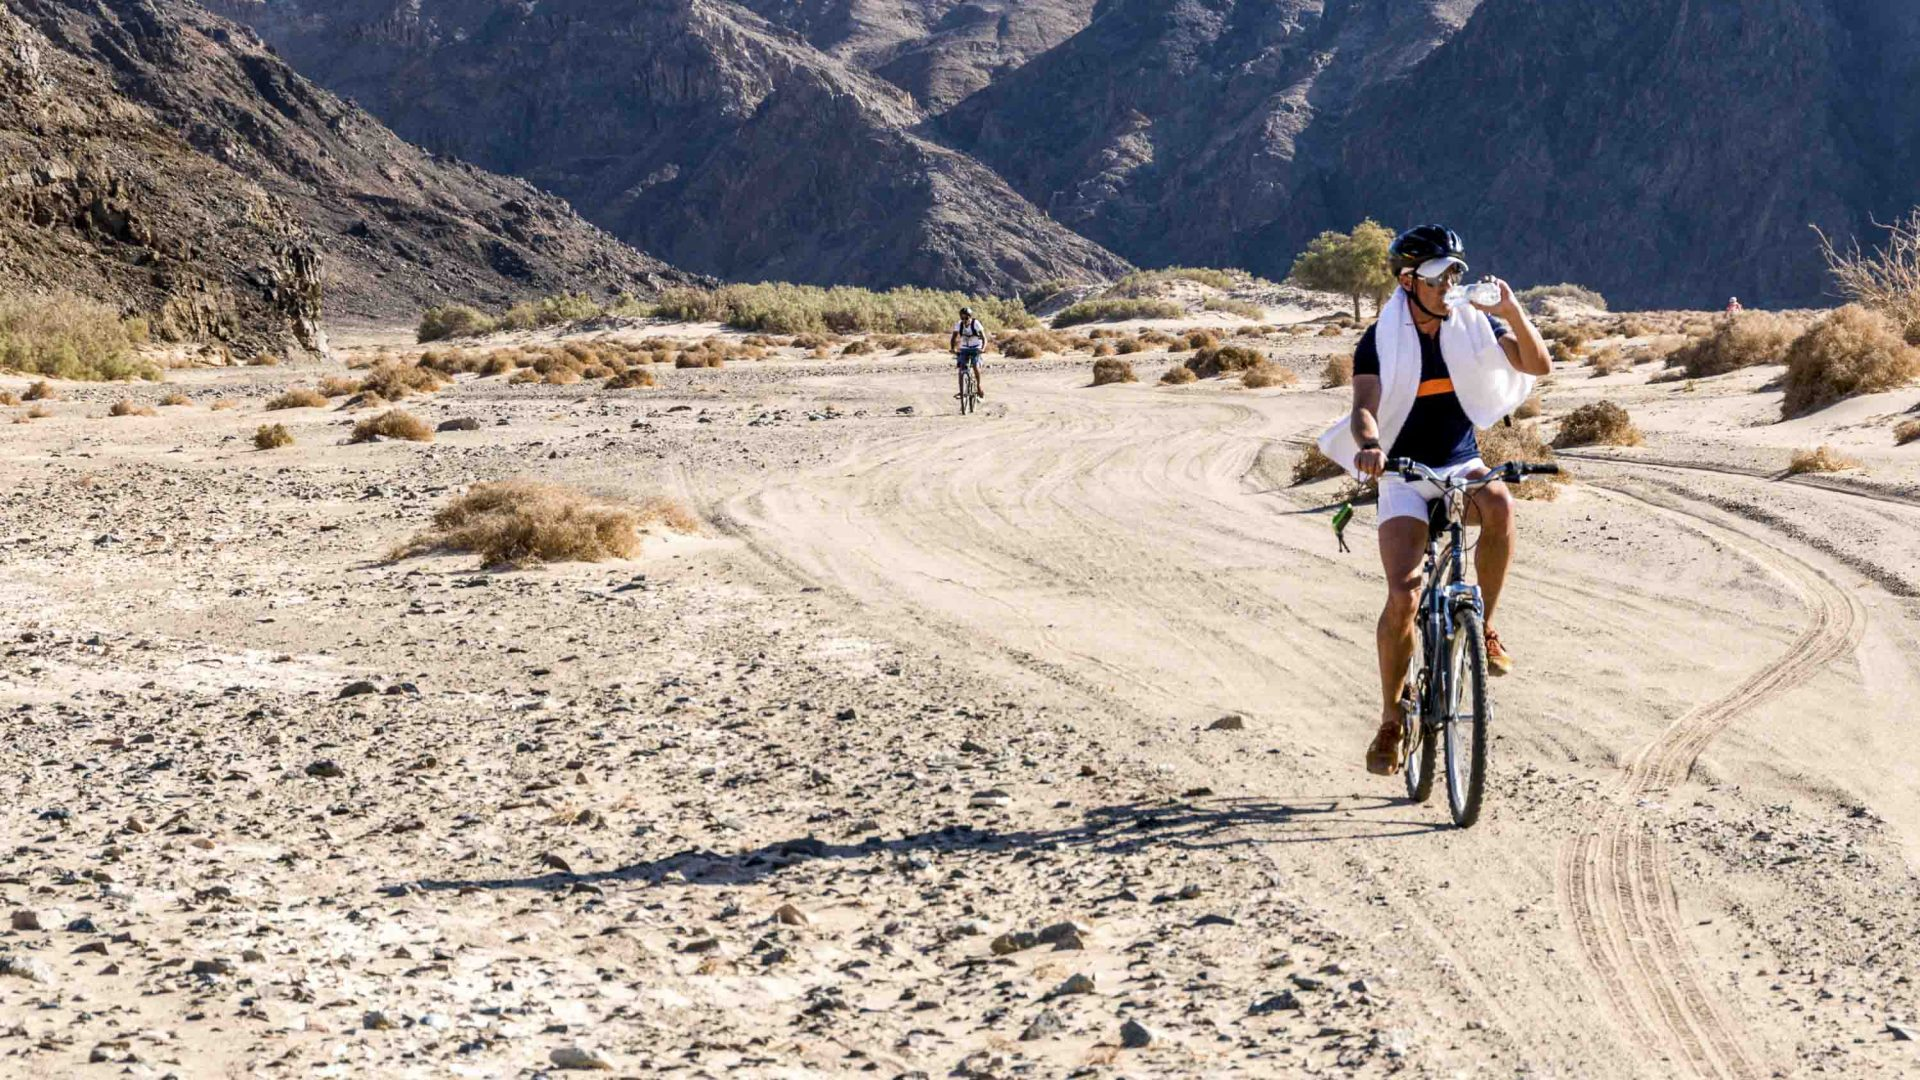 Difficult, dry, and spectacularly different: This is Egypt by bike